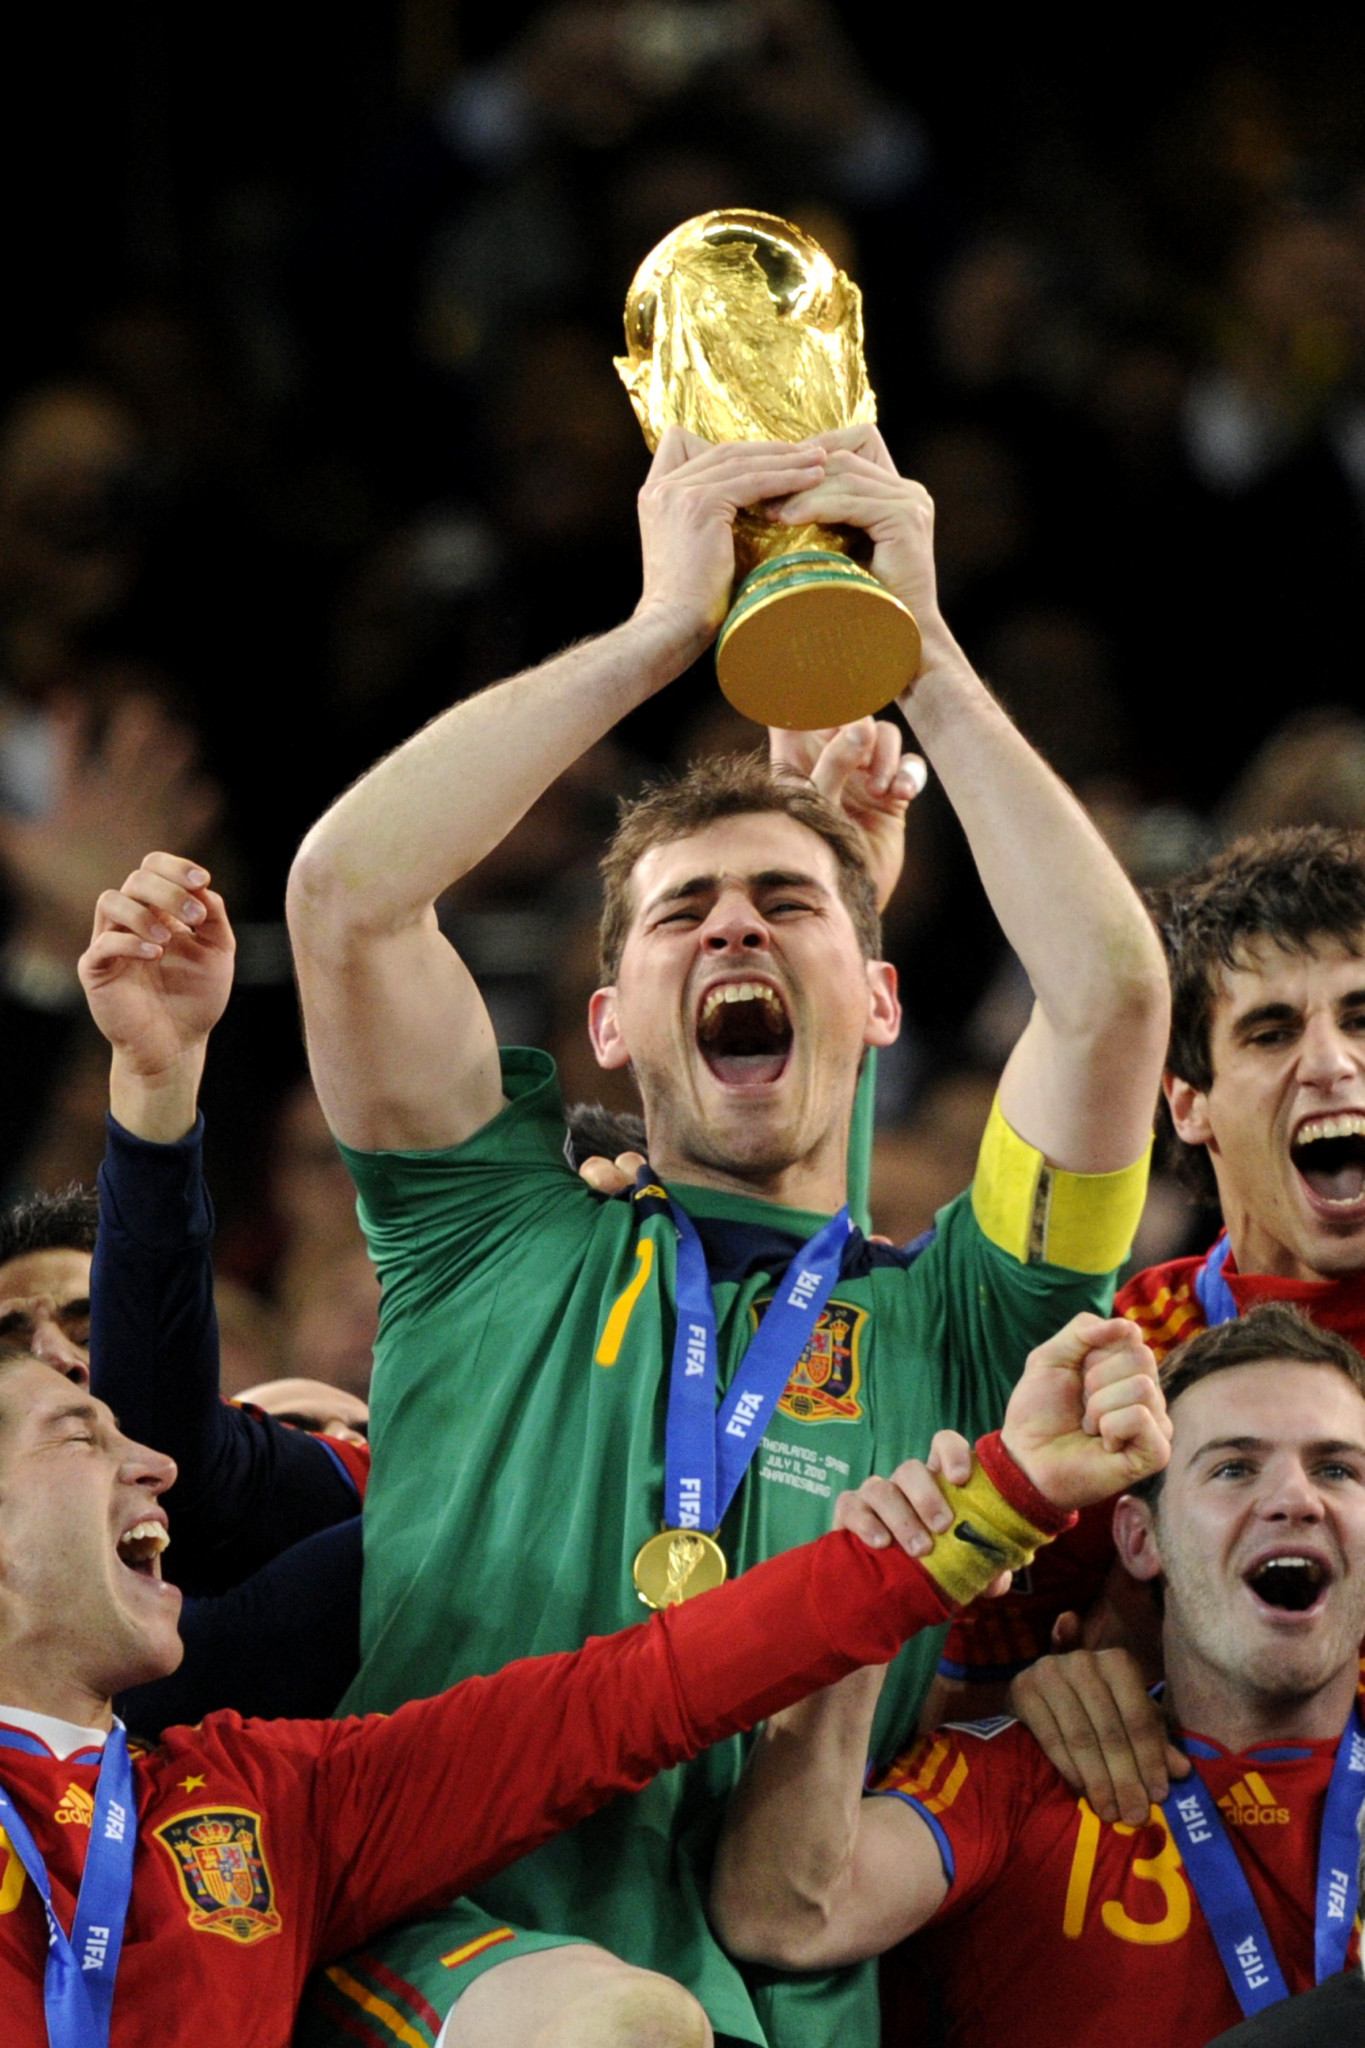 Iker Casillas won the World Cup with Spain in 2010 ©Getty Images